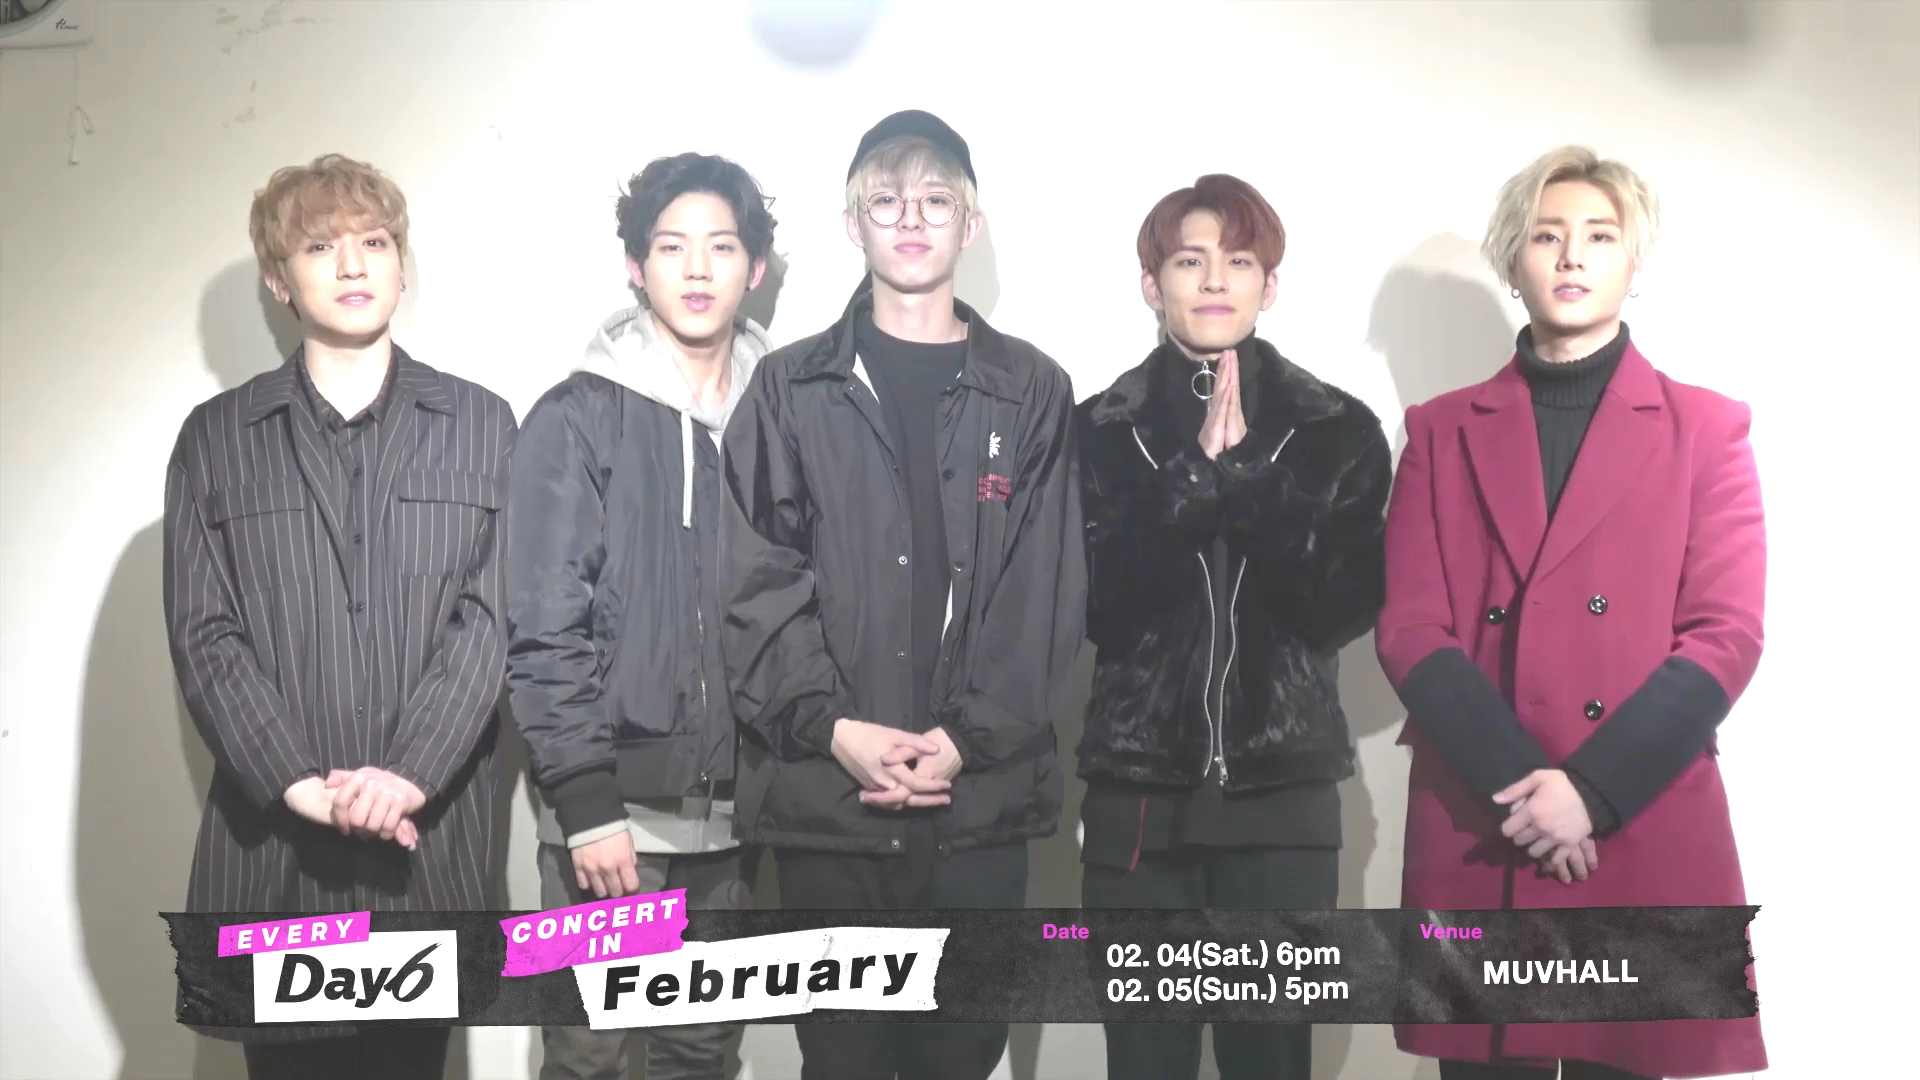 DAY6 <Every Day6 Concert in February> Invitation Video